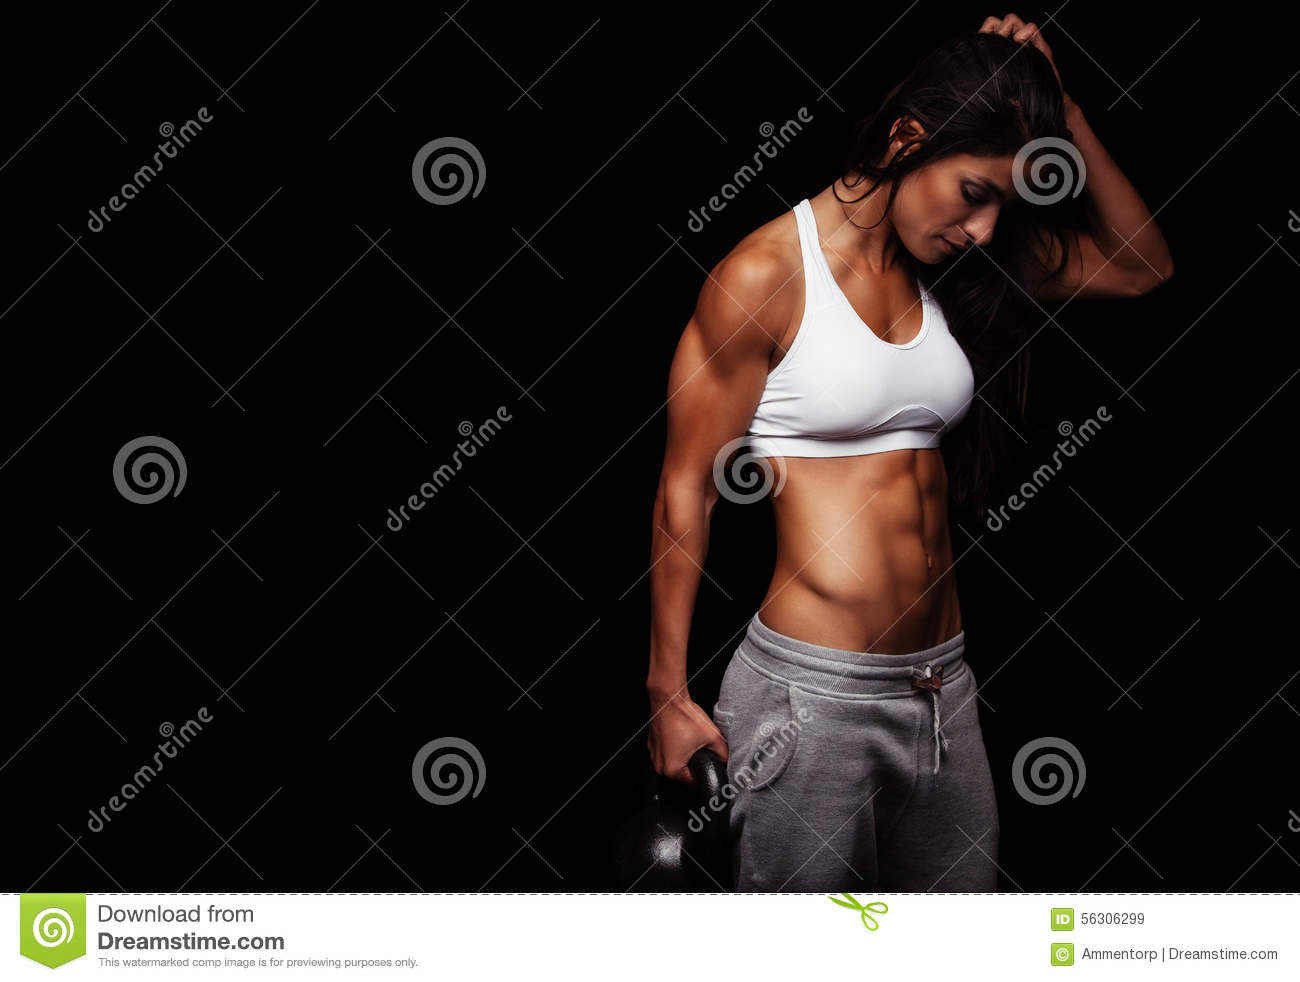 Fitness woman holding heavy kettle bell